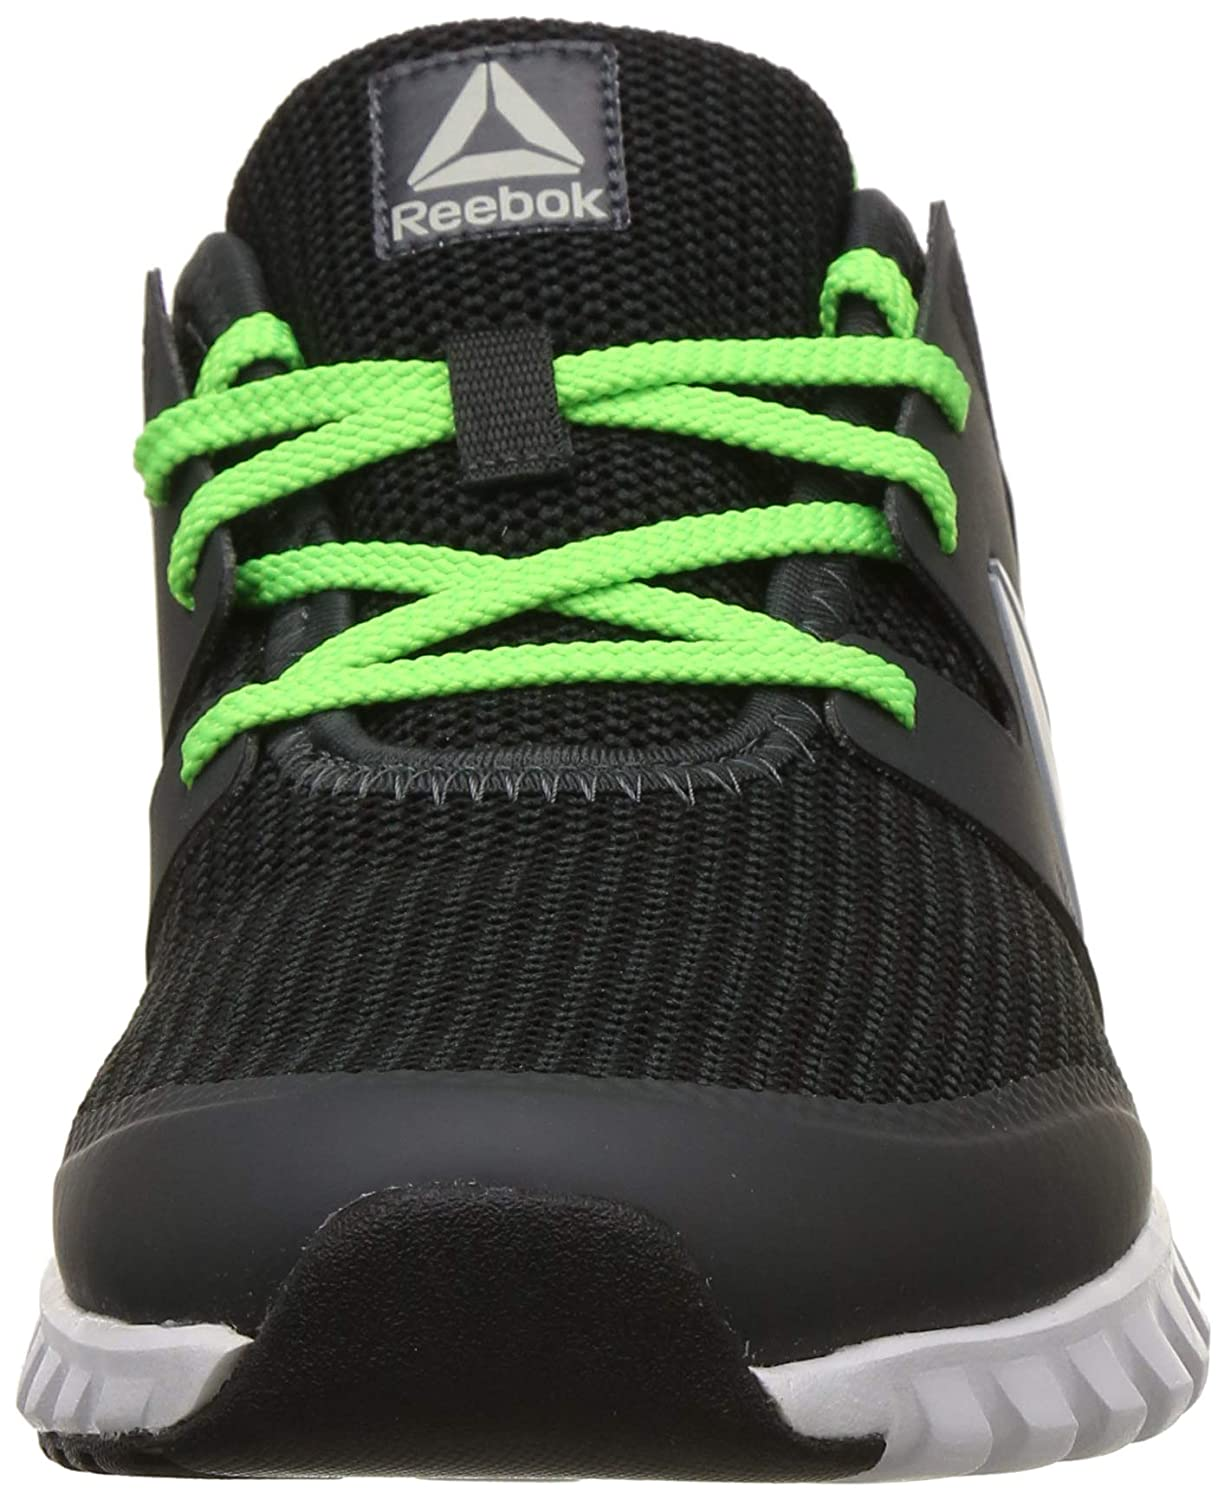 6480e26ffc98 Reebok Men s Twist Lp Running Shoes  Buy Online at Low Prices in India -  Amazon.in